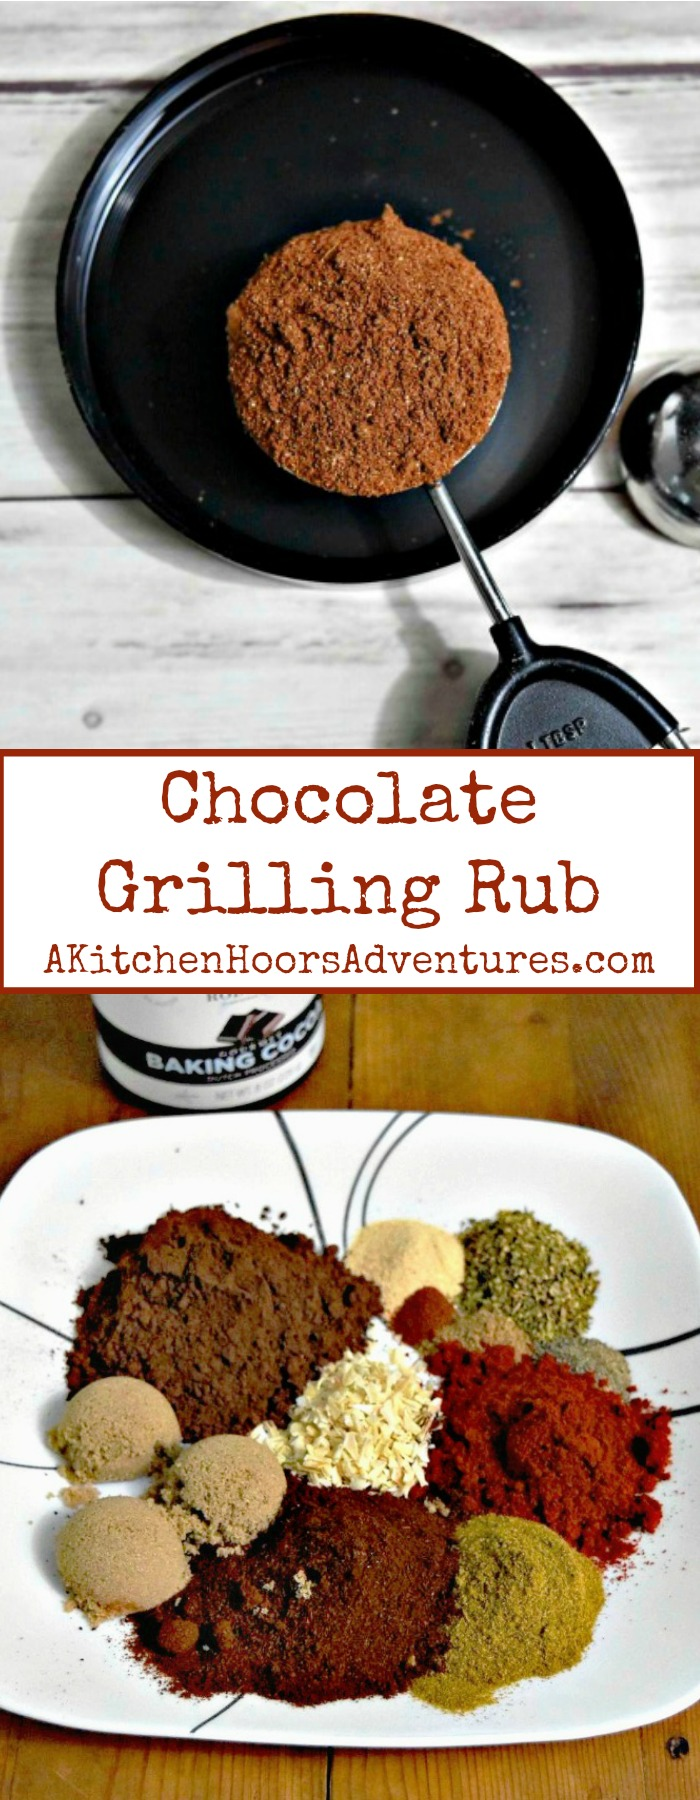 Step outside the sweet comfort zone with cocoa powder and try a grilling rub!  Chocolate Grilling Rub is packed with rich flavor that would complement any grilled meat.